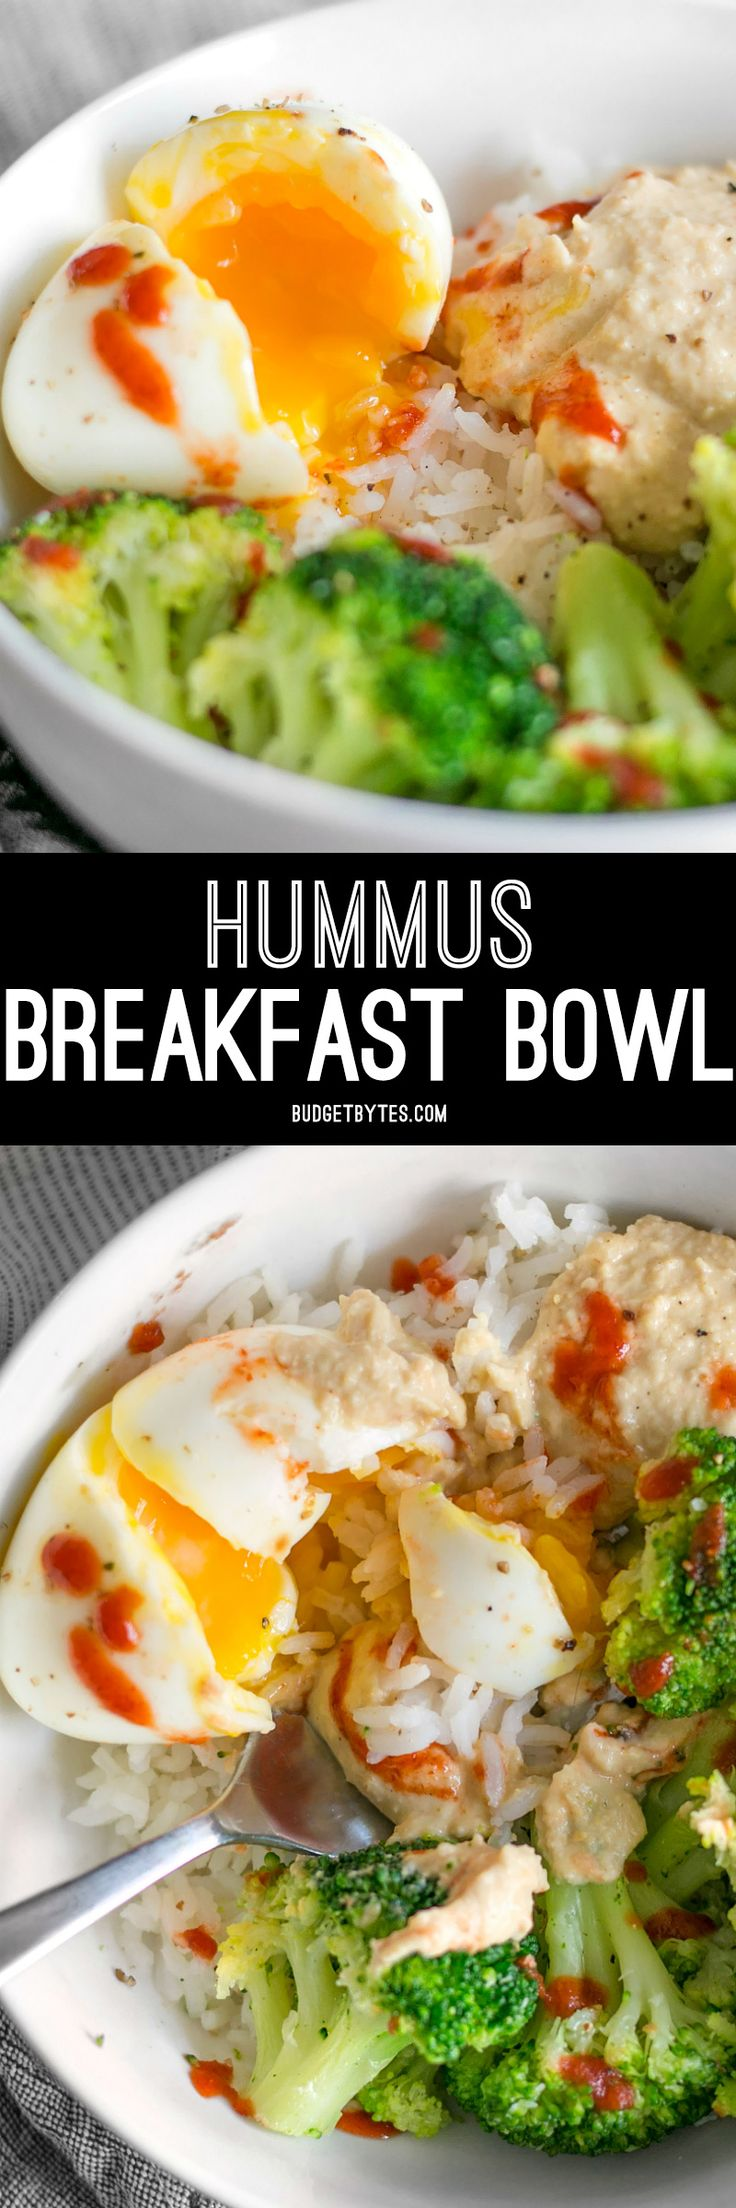 Hummus Breakfast Bowls are a medley of colors, flavors, and textures, and a great way to work vegetables into the most important meal of the day. @budgetbytes